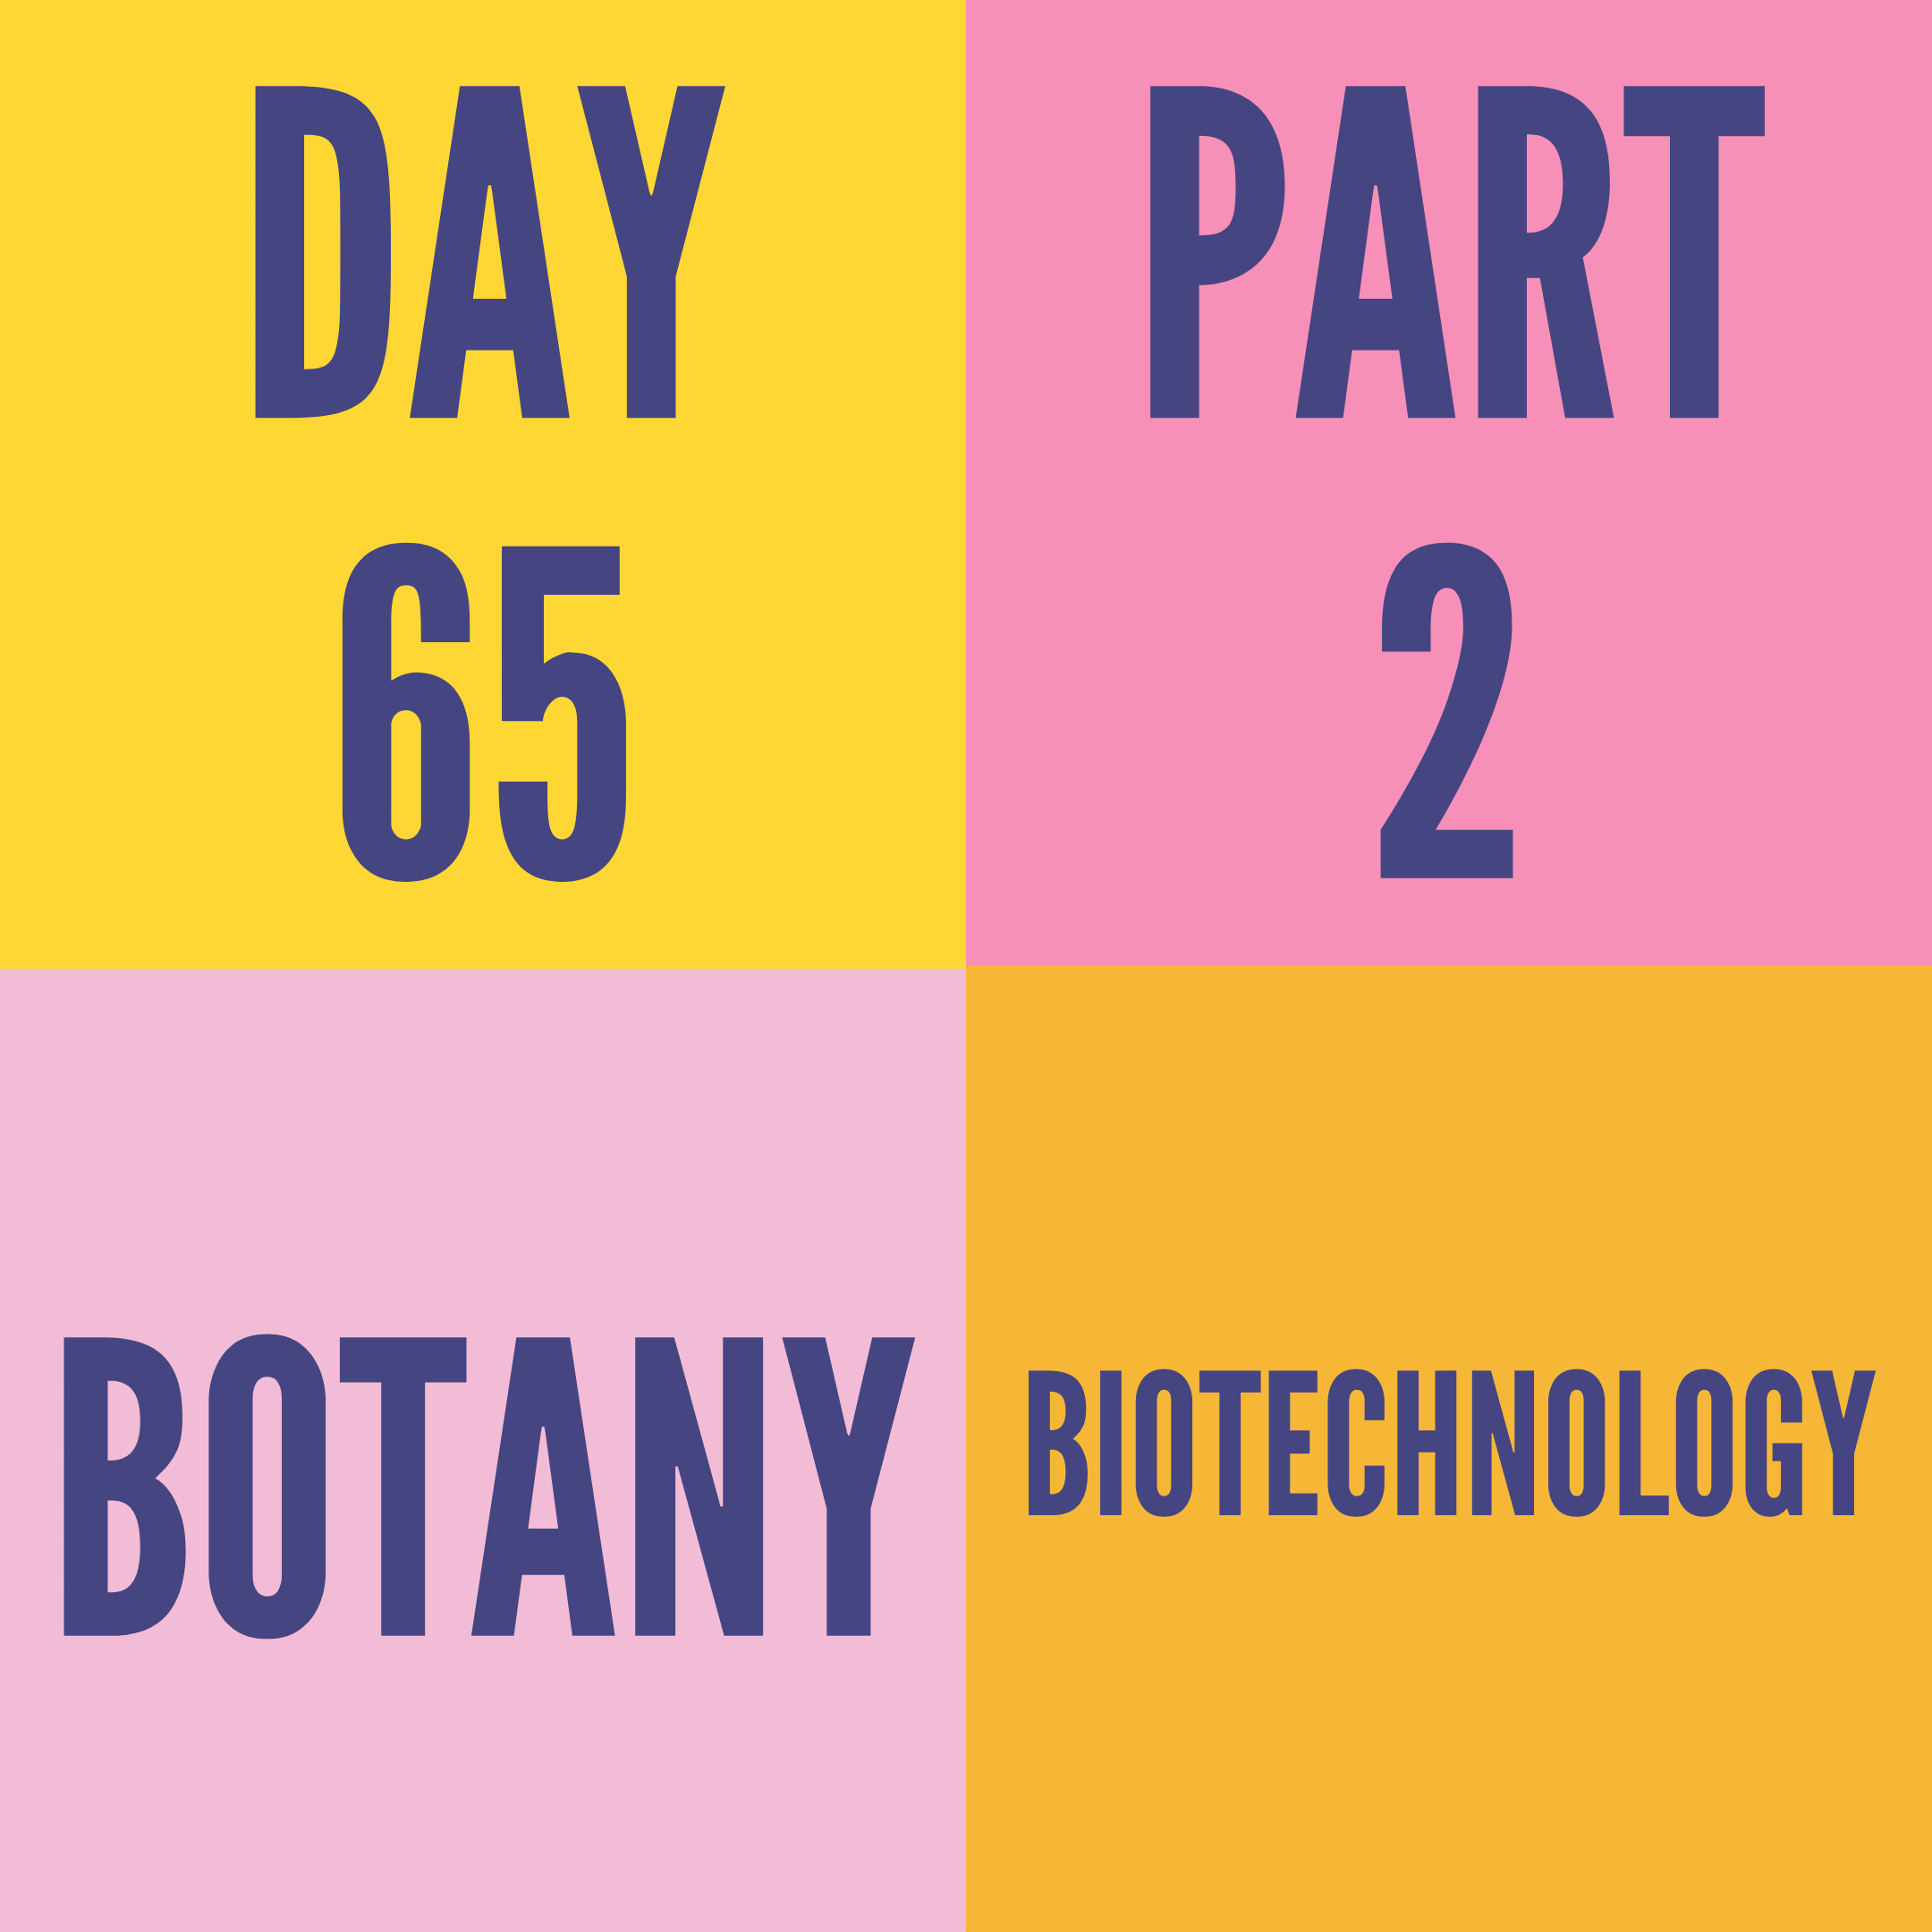 DAY-65 PART-2 BIOTECHNOLOGY